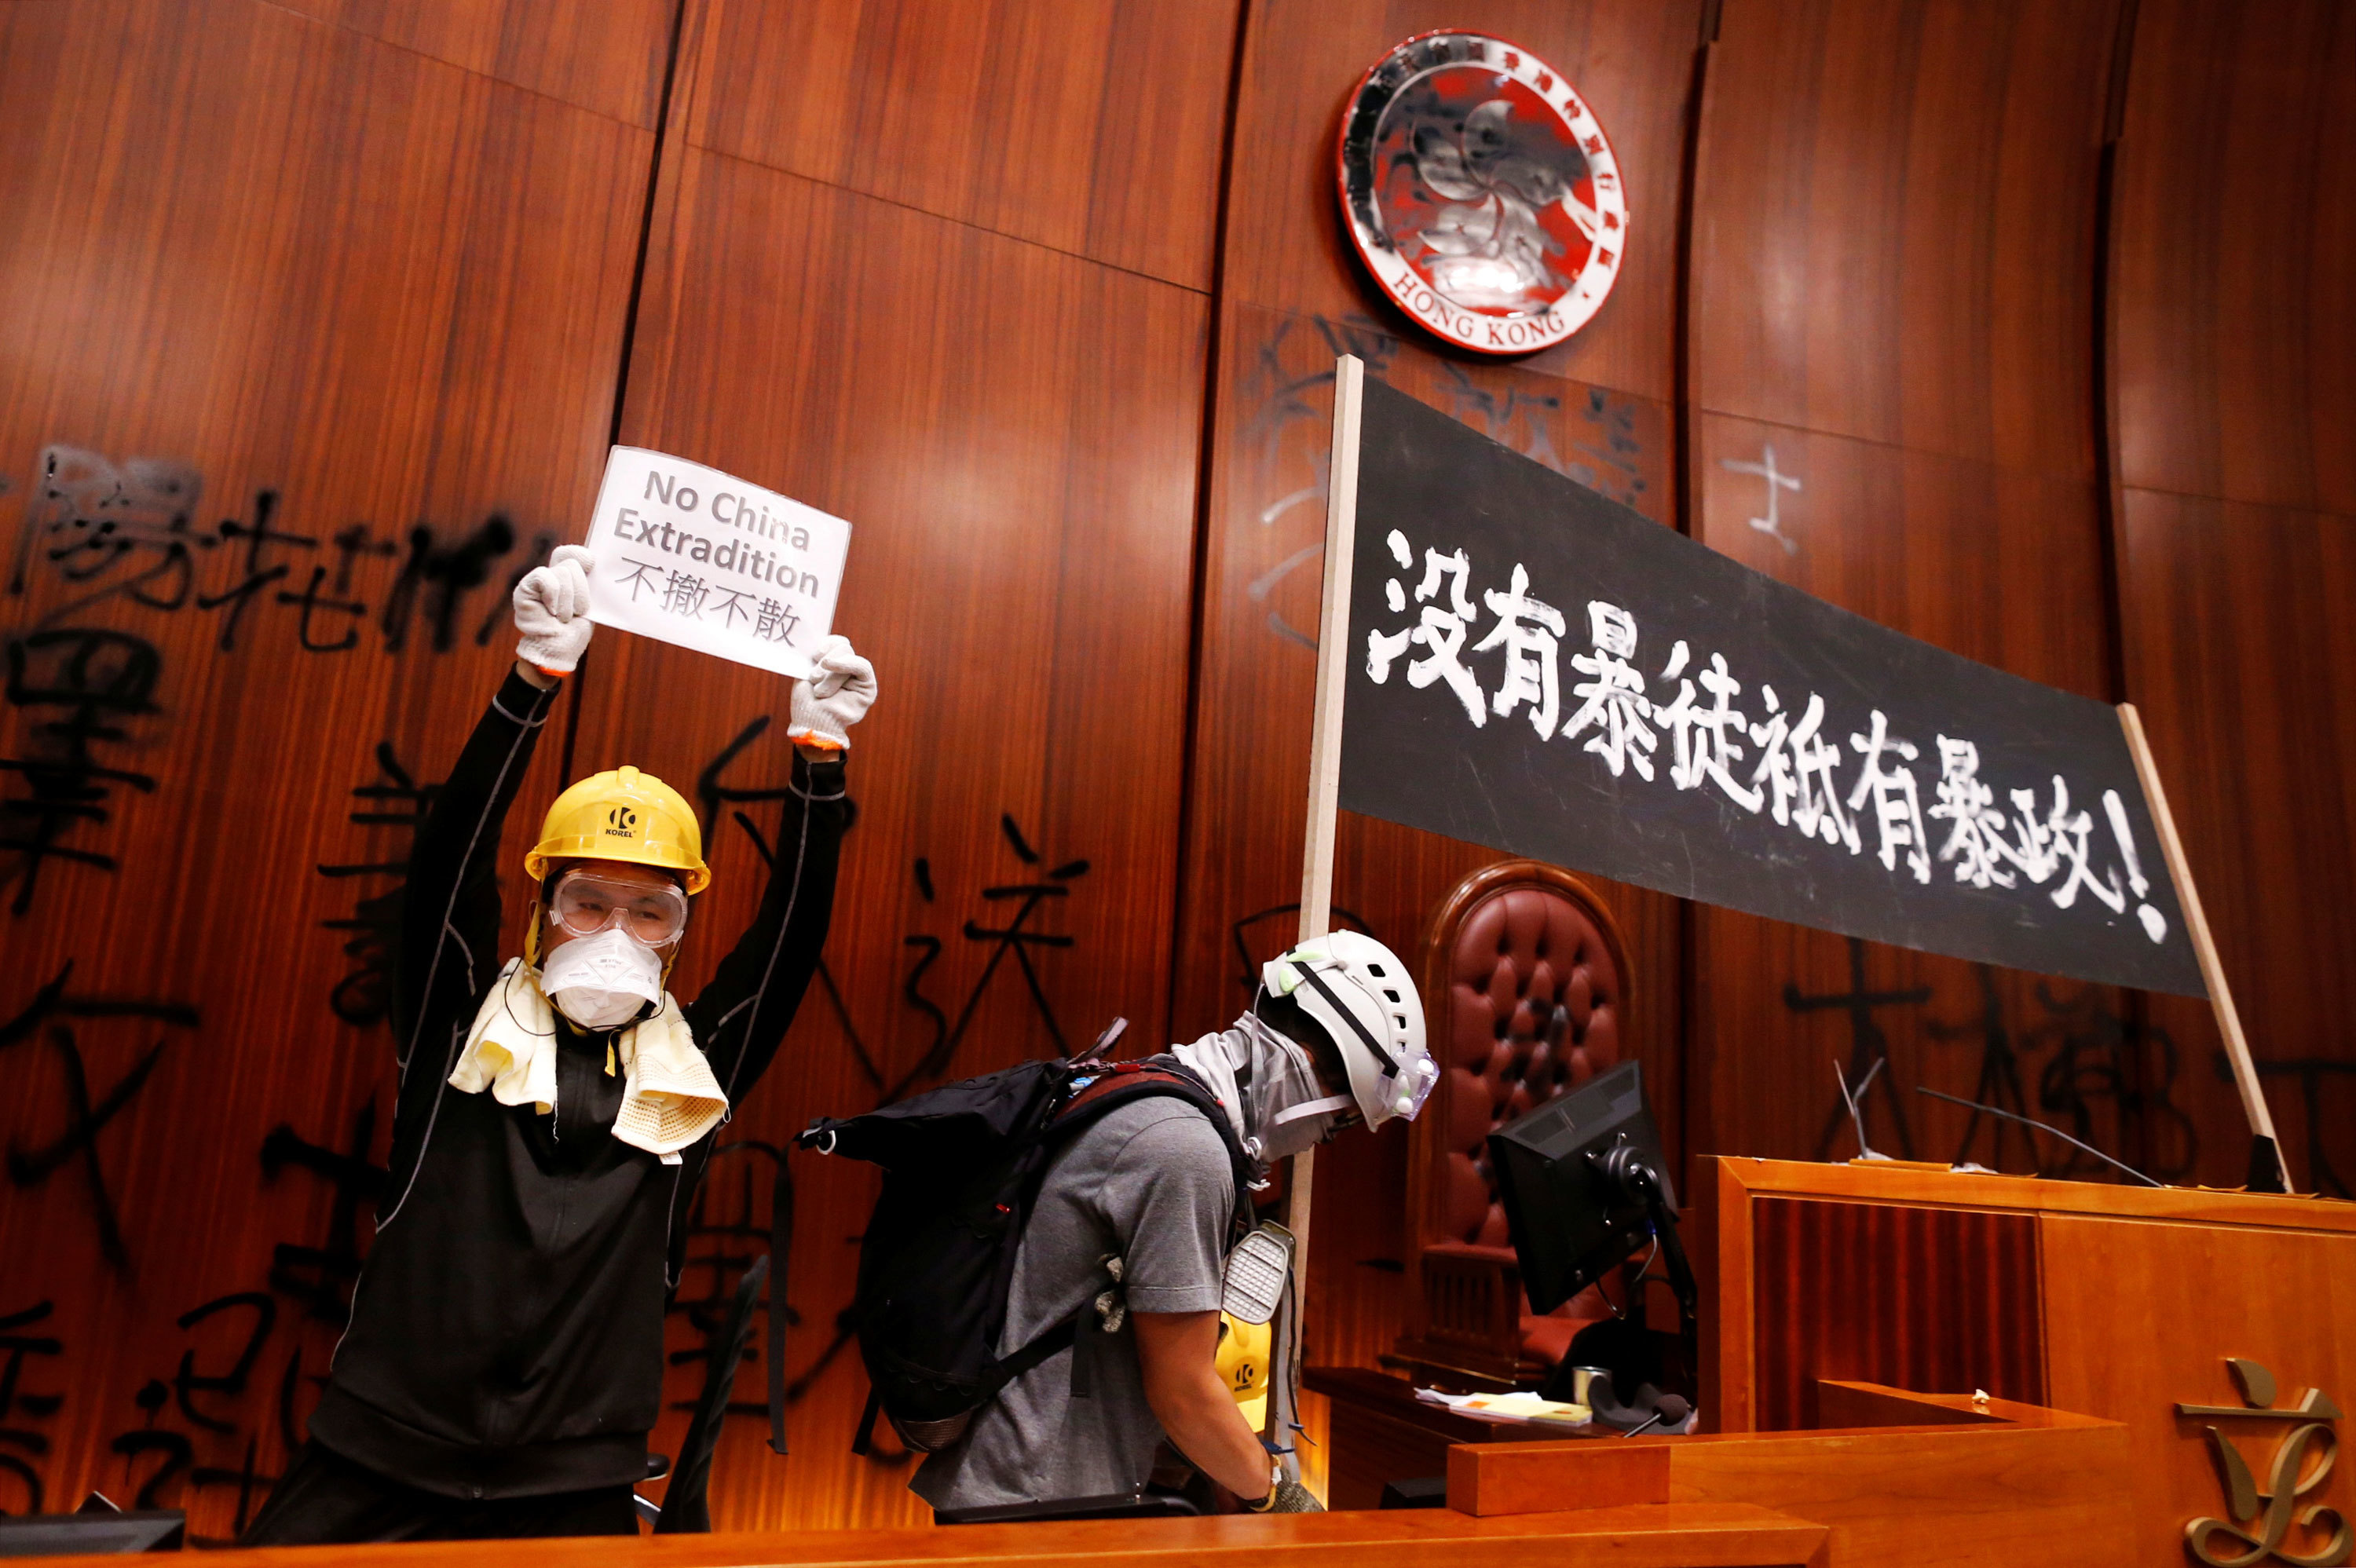 After the protesters breached the Hong Kong legislature on July 1, they defaced the inside of the building with slogans. (Stringer/Reuters)